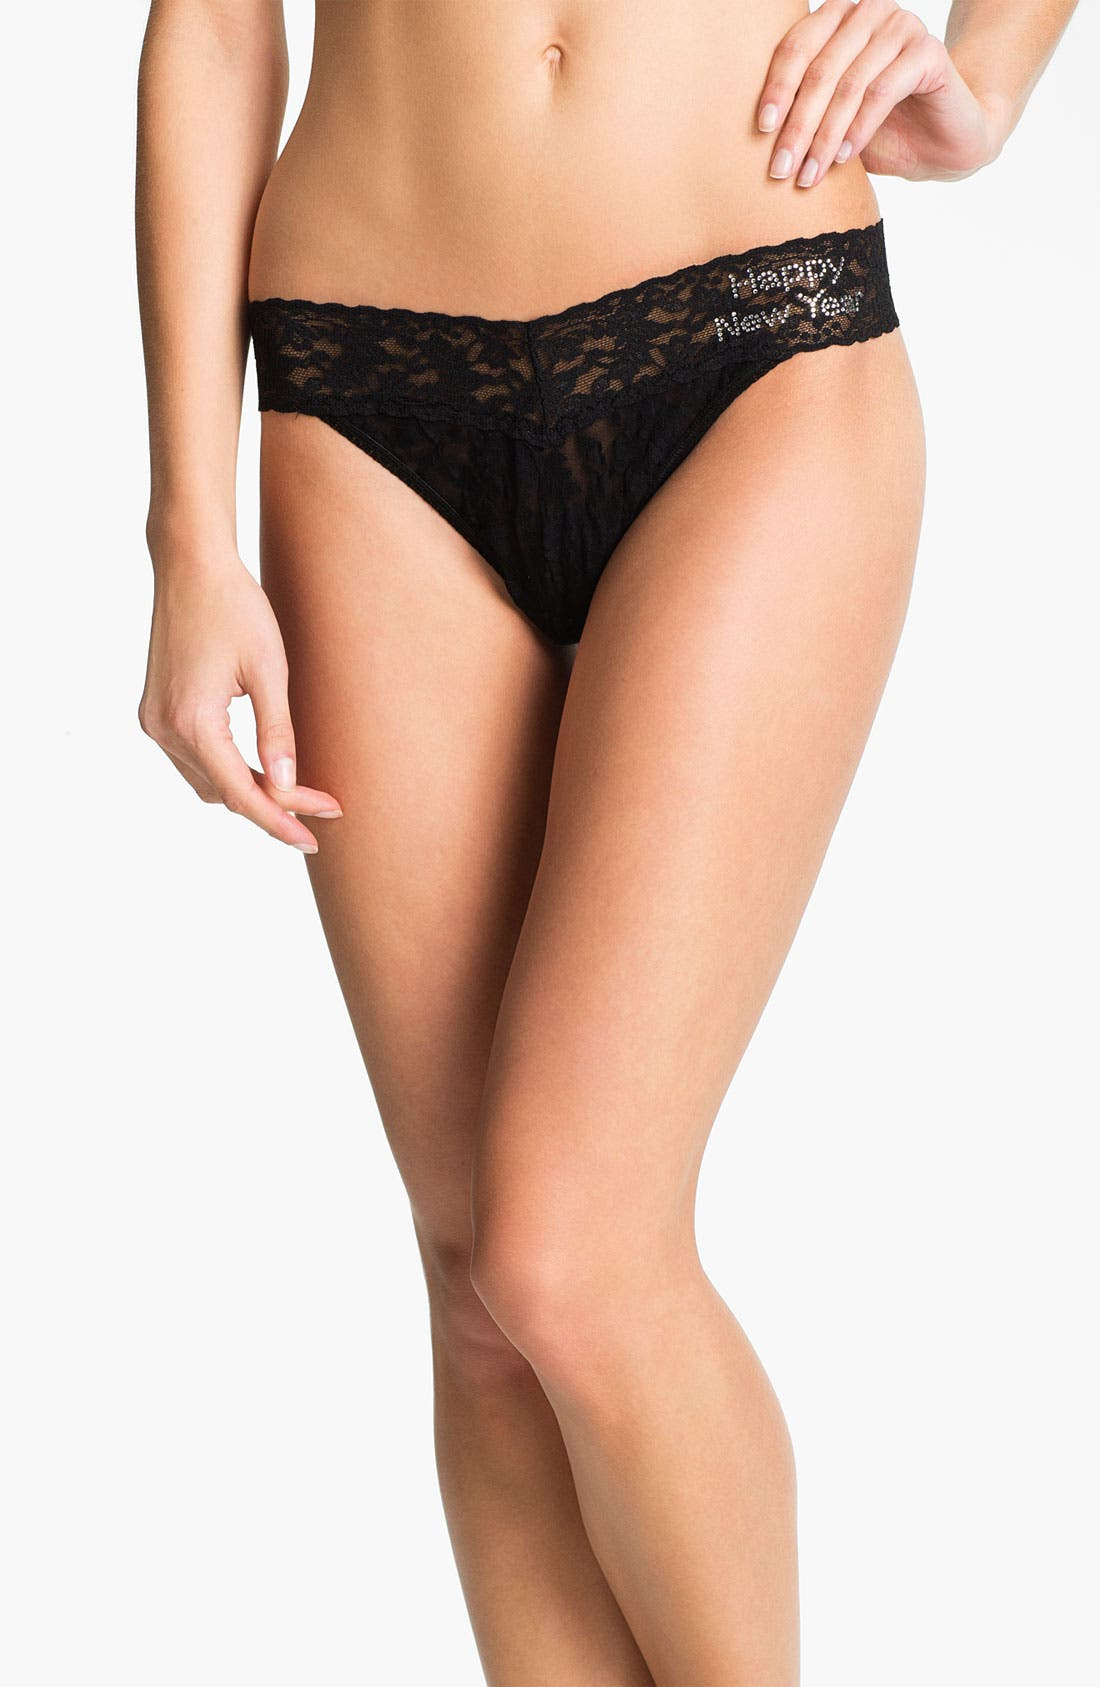 Main Image - Hanky Panky 'Happy New Year' Embellished Regular Rise Thong